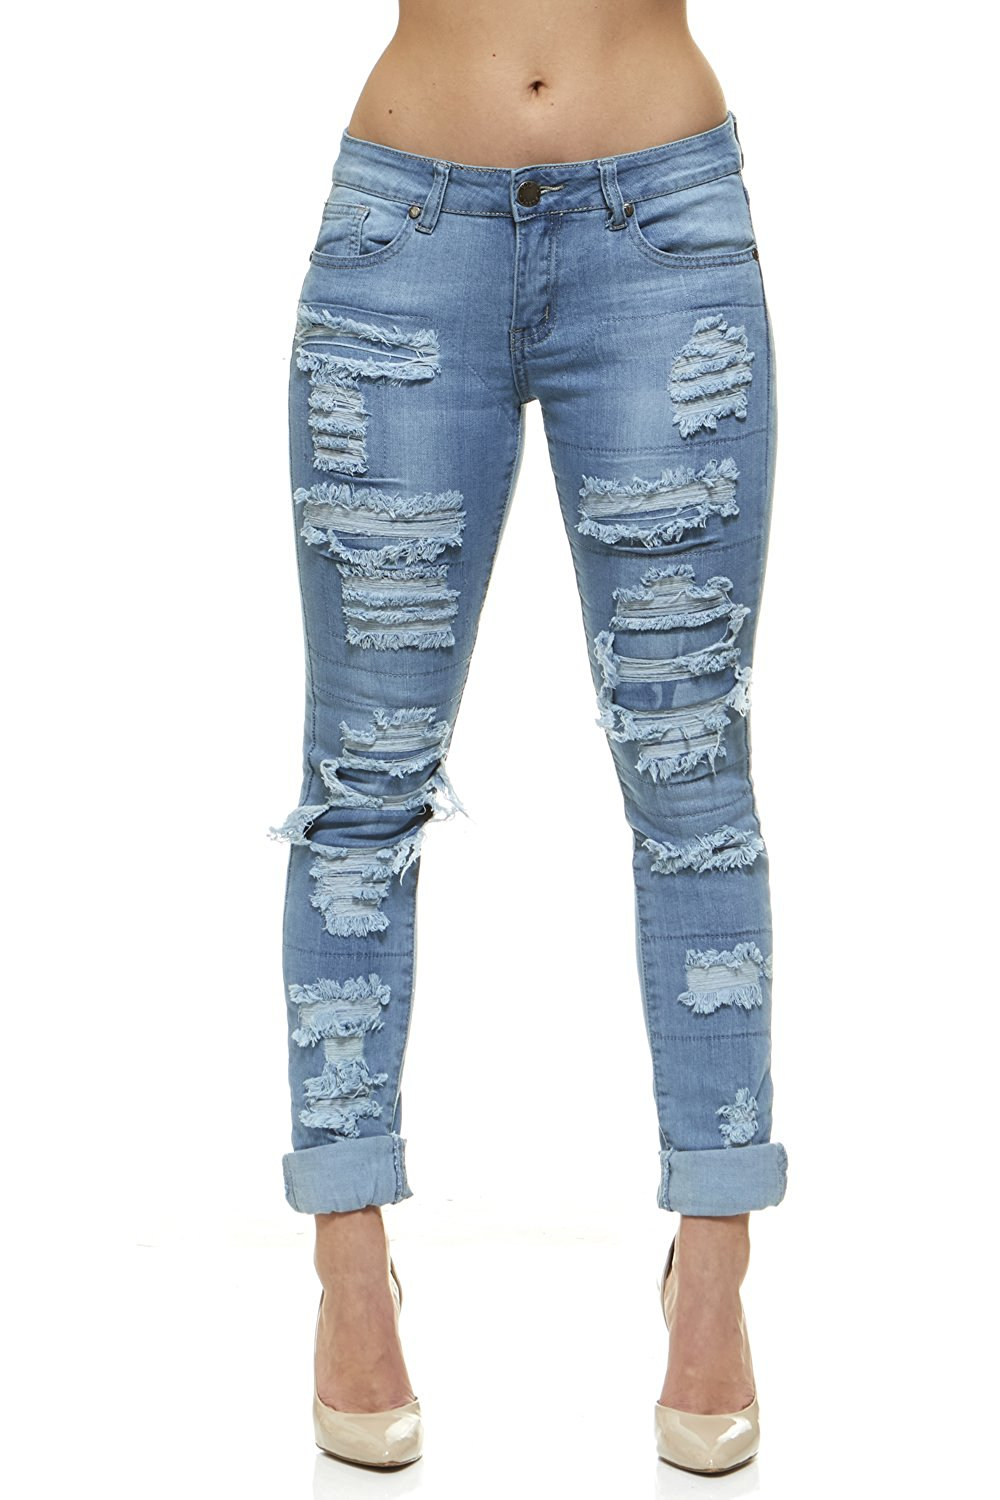 c4d6df79c2143 Get Quotations · V.I.P.JEANS Plus Size Jeans for Women Distressed Skinny  Ripped Patched Jeans Junior and Plus Sizes